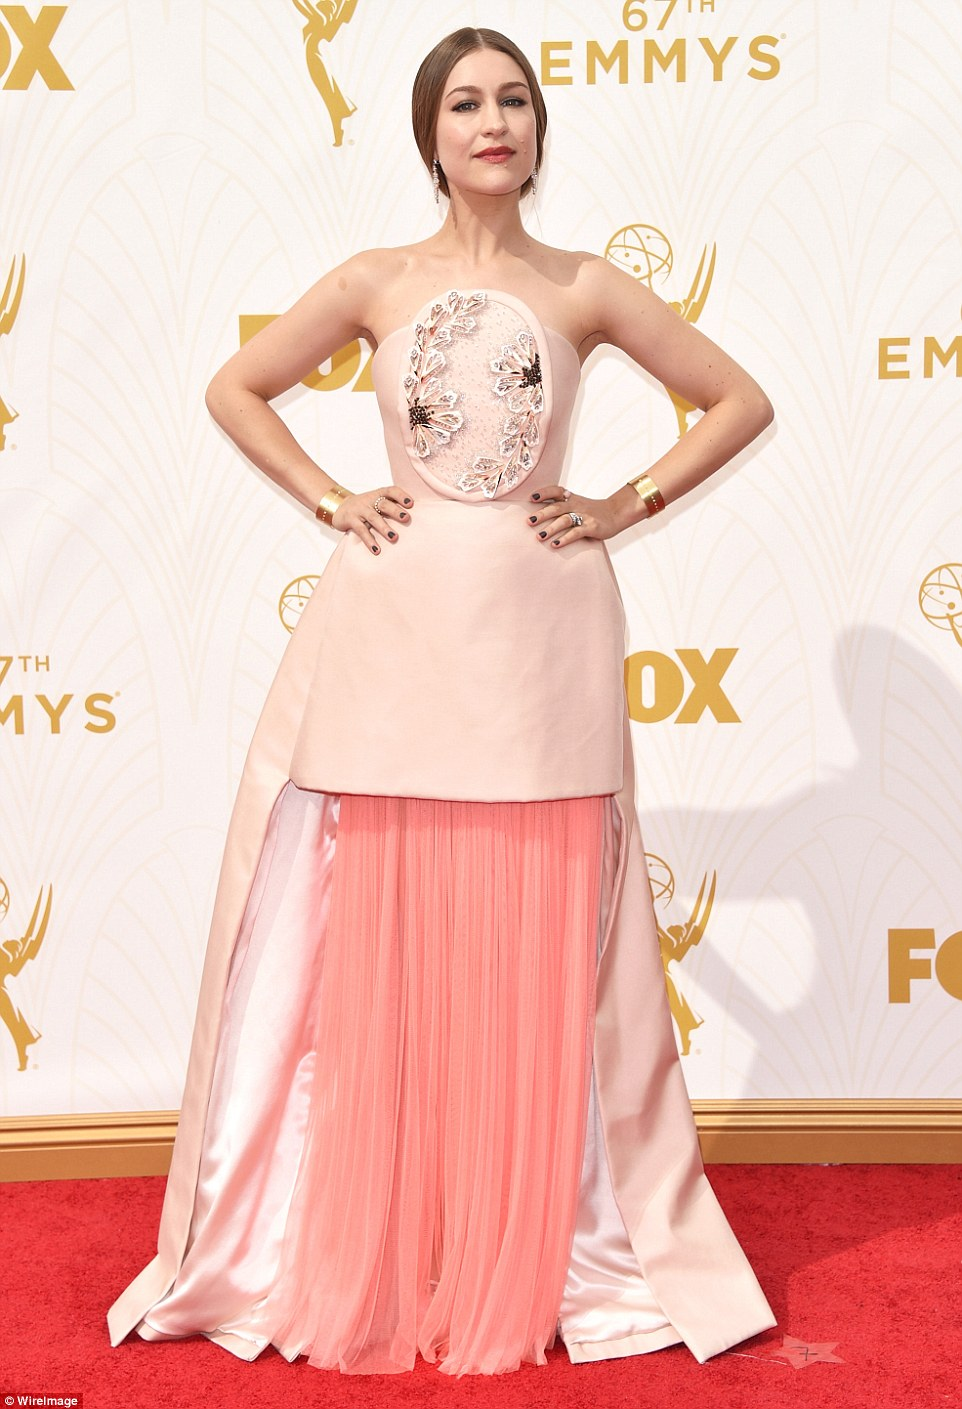 Making a statement: Singer Joanna Newsom - the wife of Emmys host Andy Samberg - looked like the dinner table met the drapes in this eccentric outfit